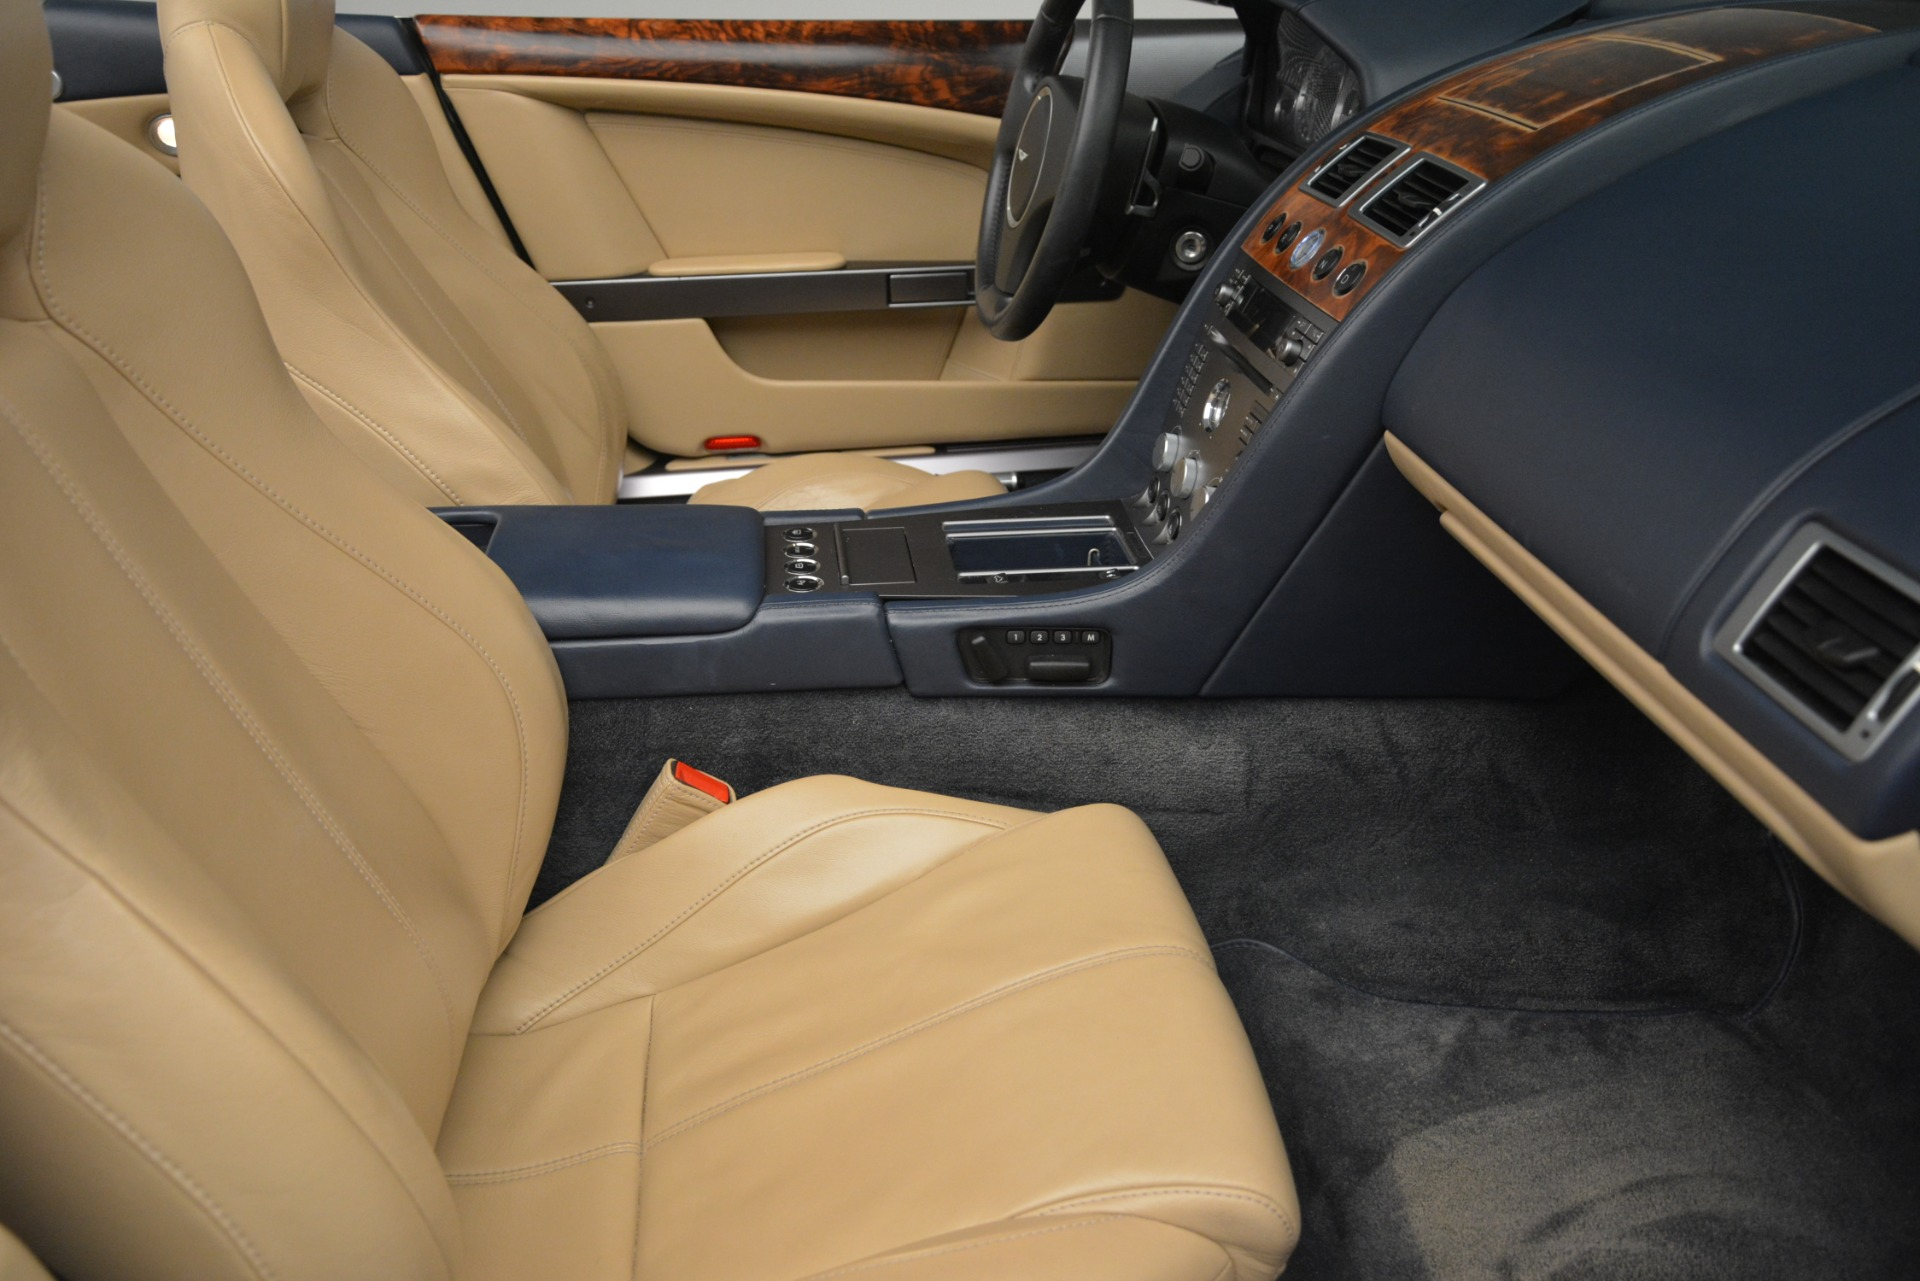 Used 2007 Aston Martin DB9 Convertible For Sale In Greenwich, CT 3291_p20